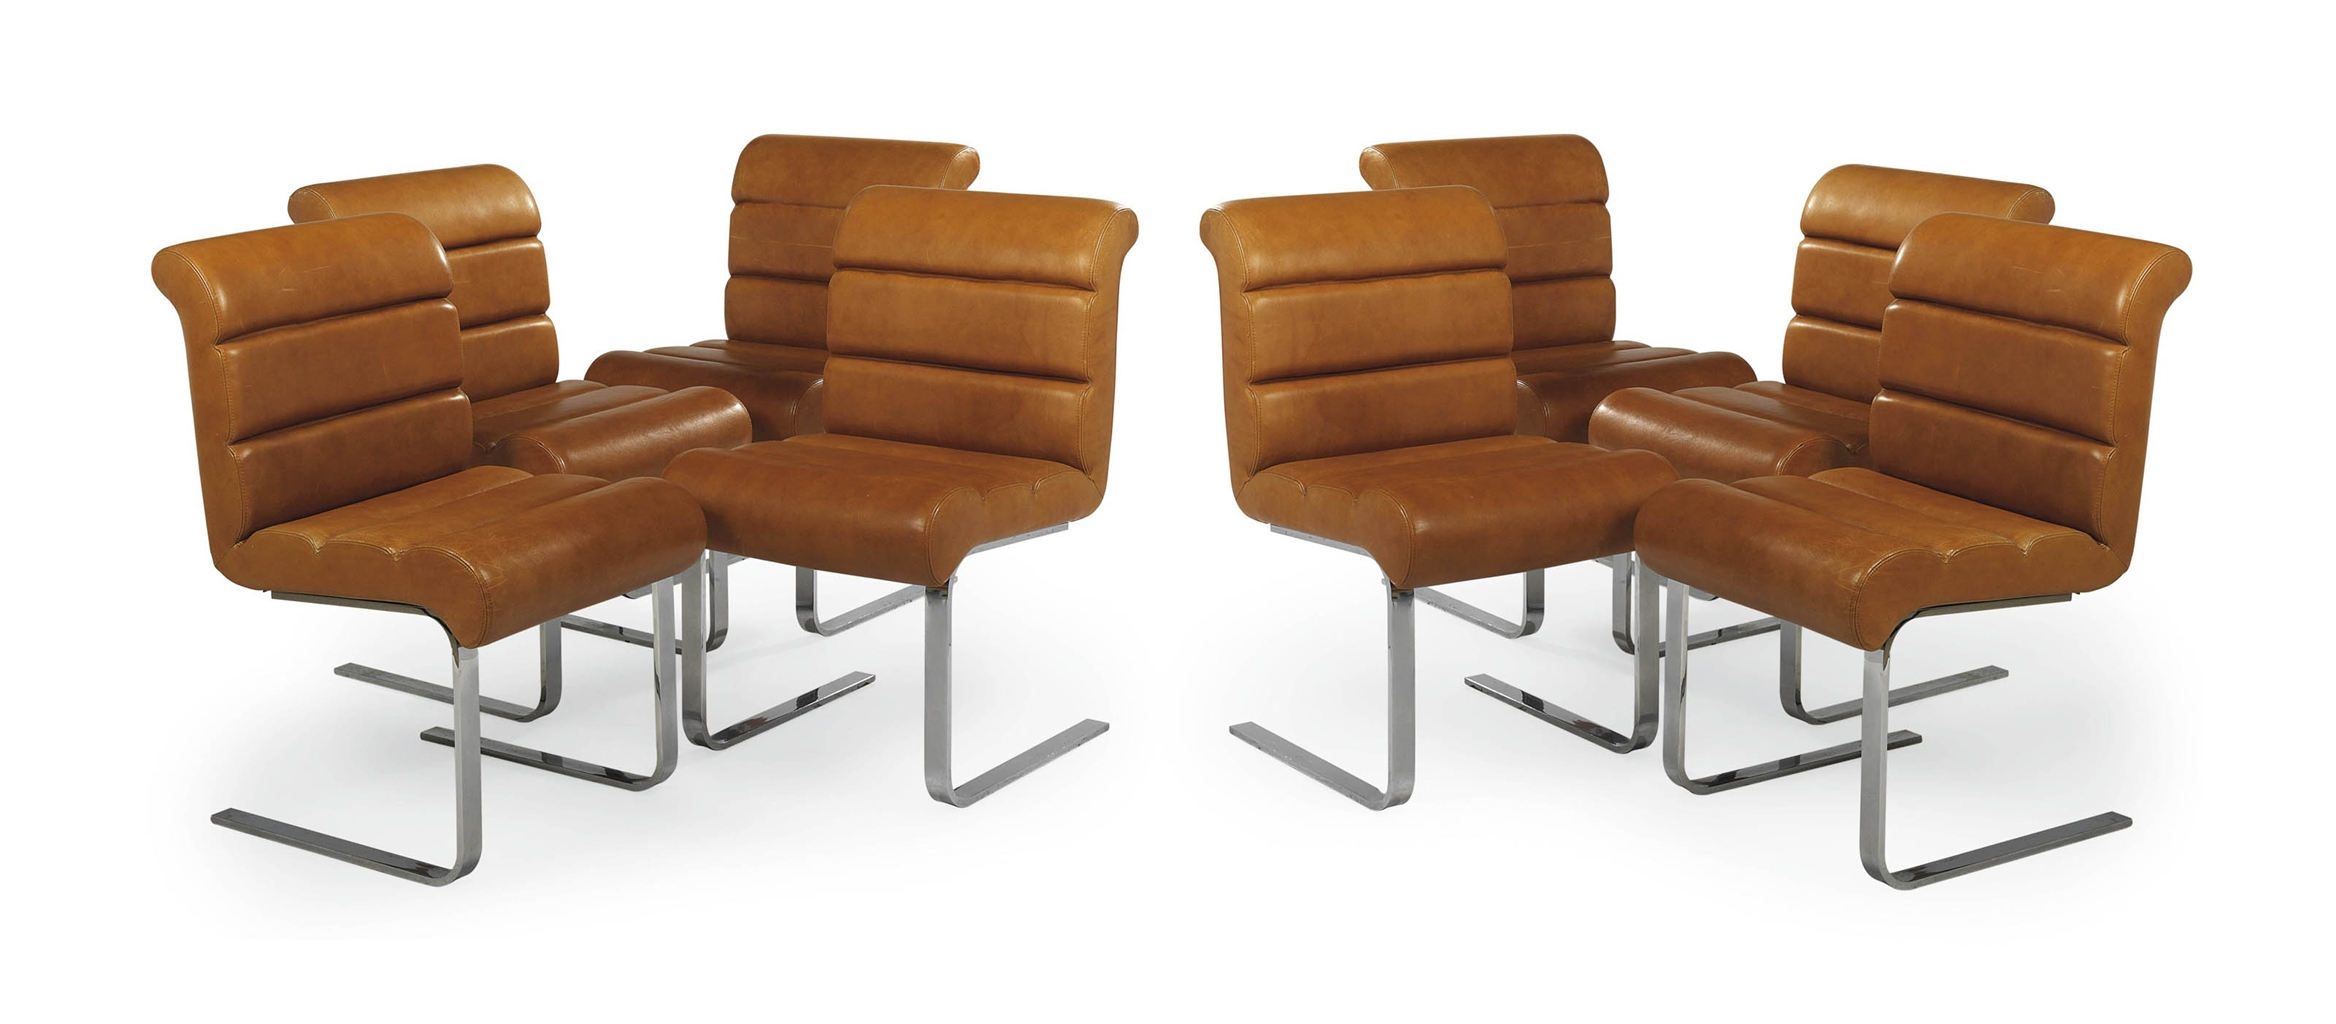 A set of eight chrome and tan leather dining chairs by for Leather and chrome dining chairs